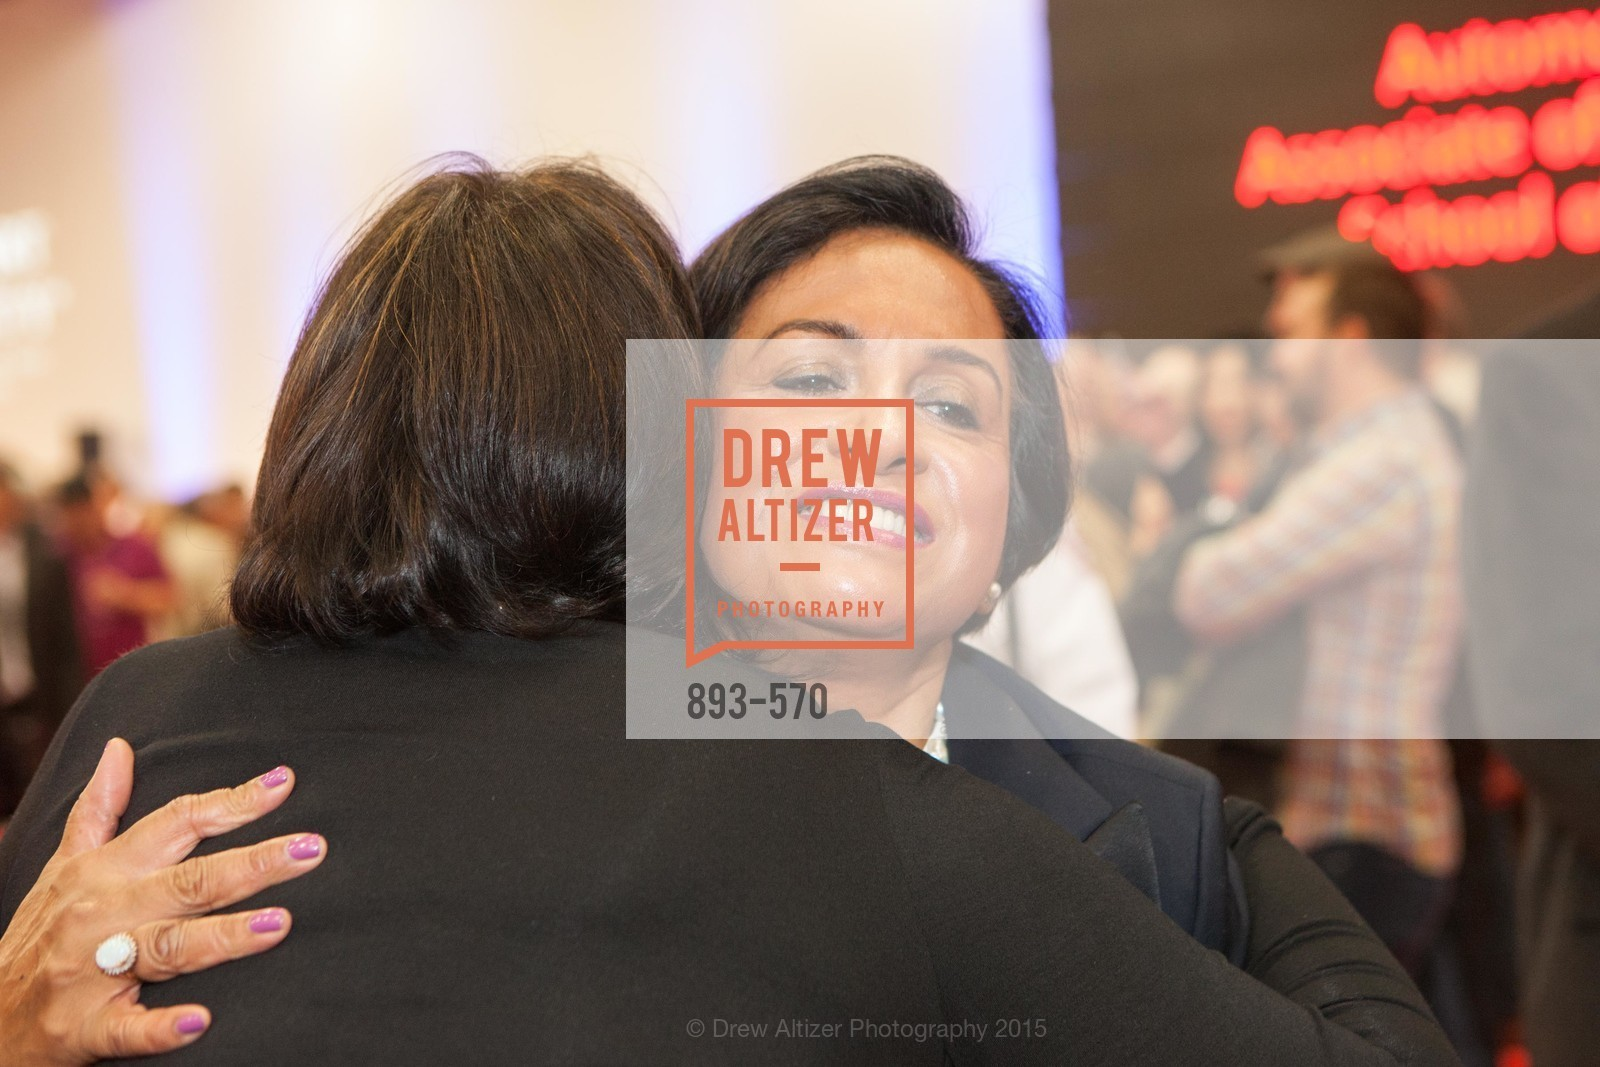 Extras, Academy of Art University Reception at the 58th Annual SF International Auto Show, November 20th, 2015, Photo,Drew Altizer, Drew Altizer Photography, full-service event agency, private events, San Francisco photographer, photographer California